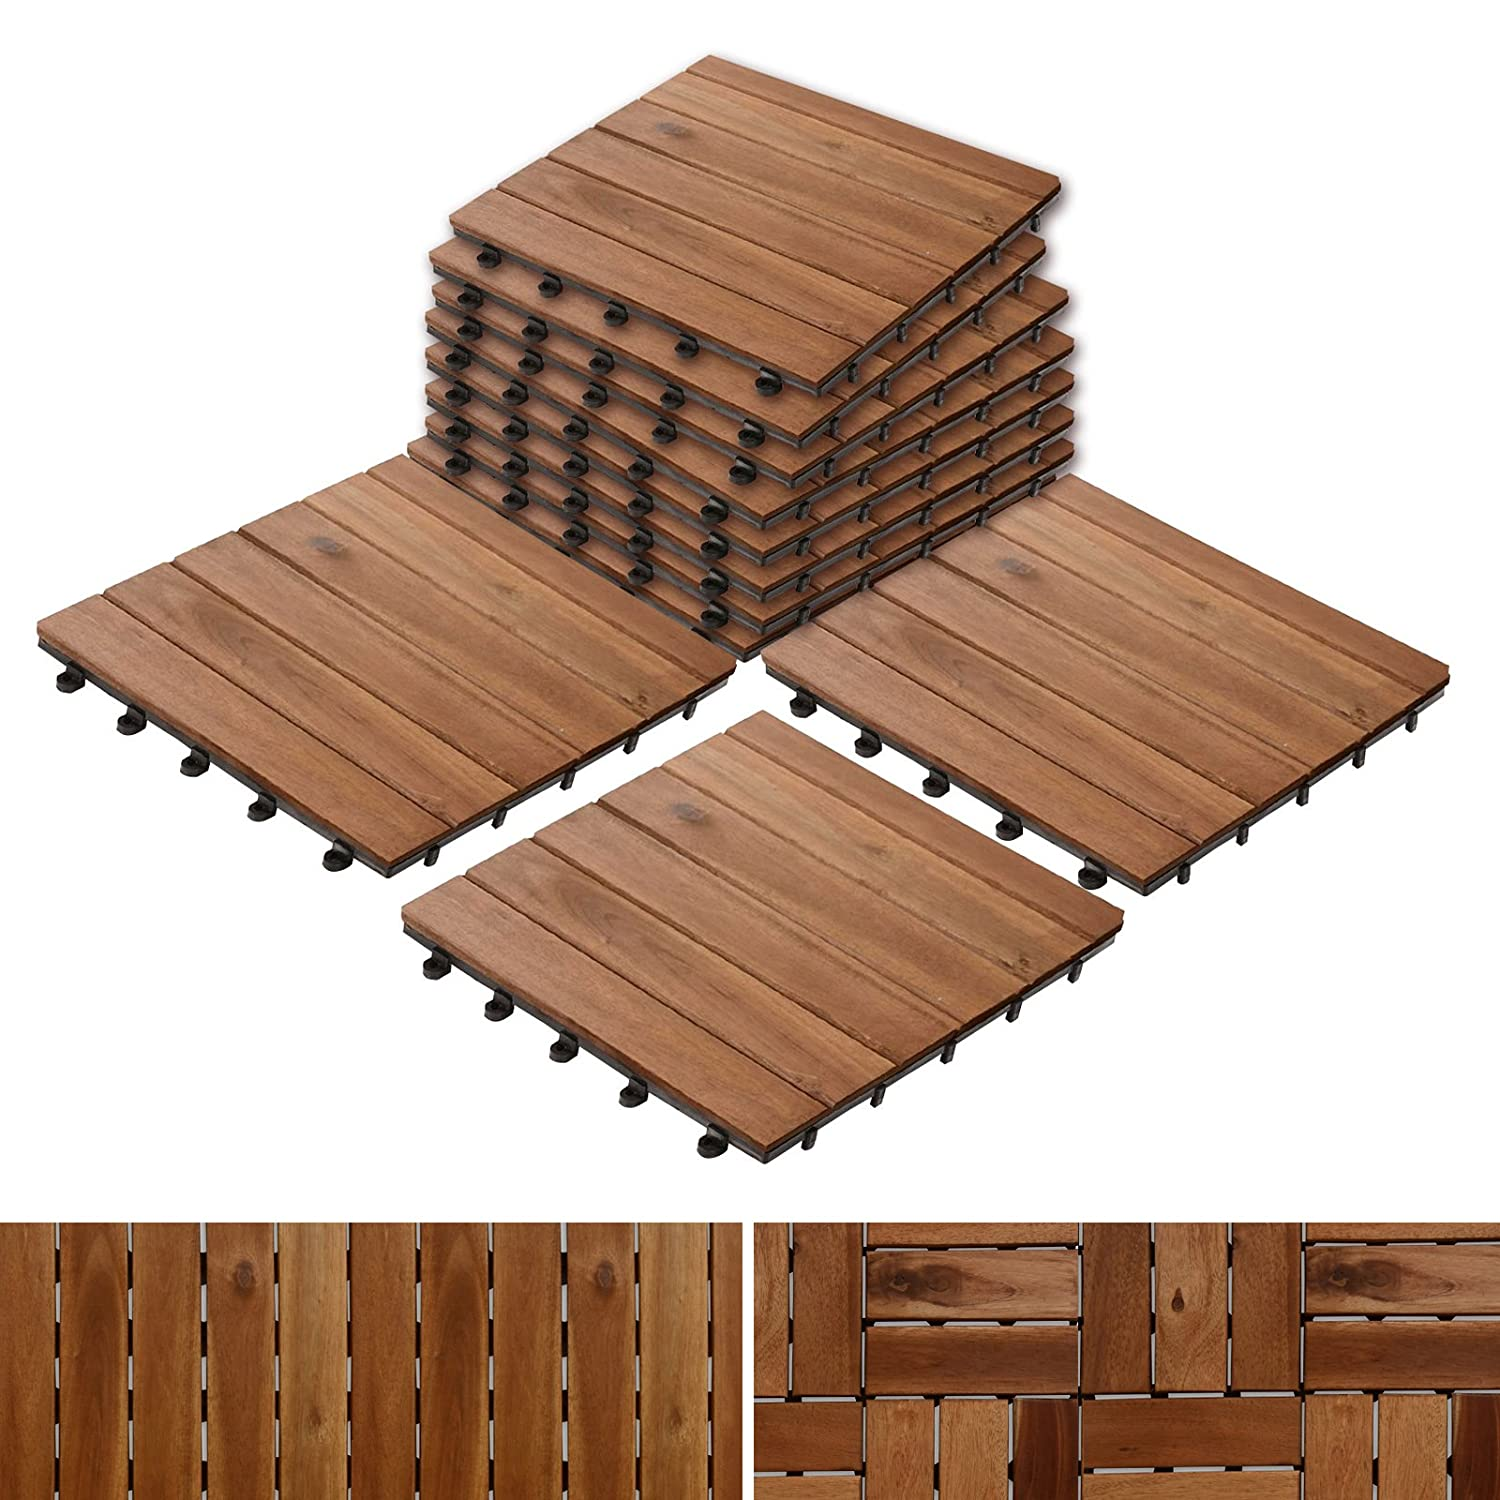 Patio pavers composite decking flooring and deck tiles for Composite flooring for decks